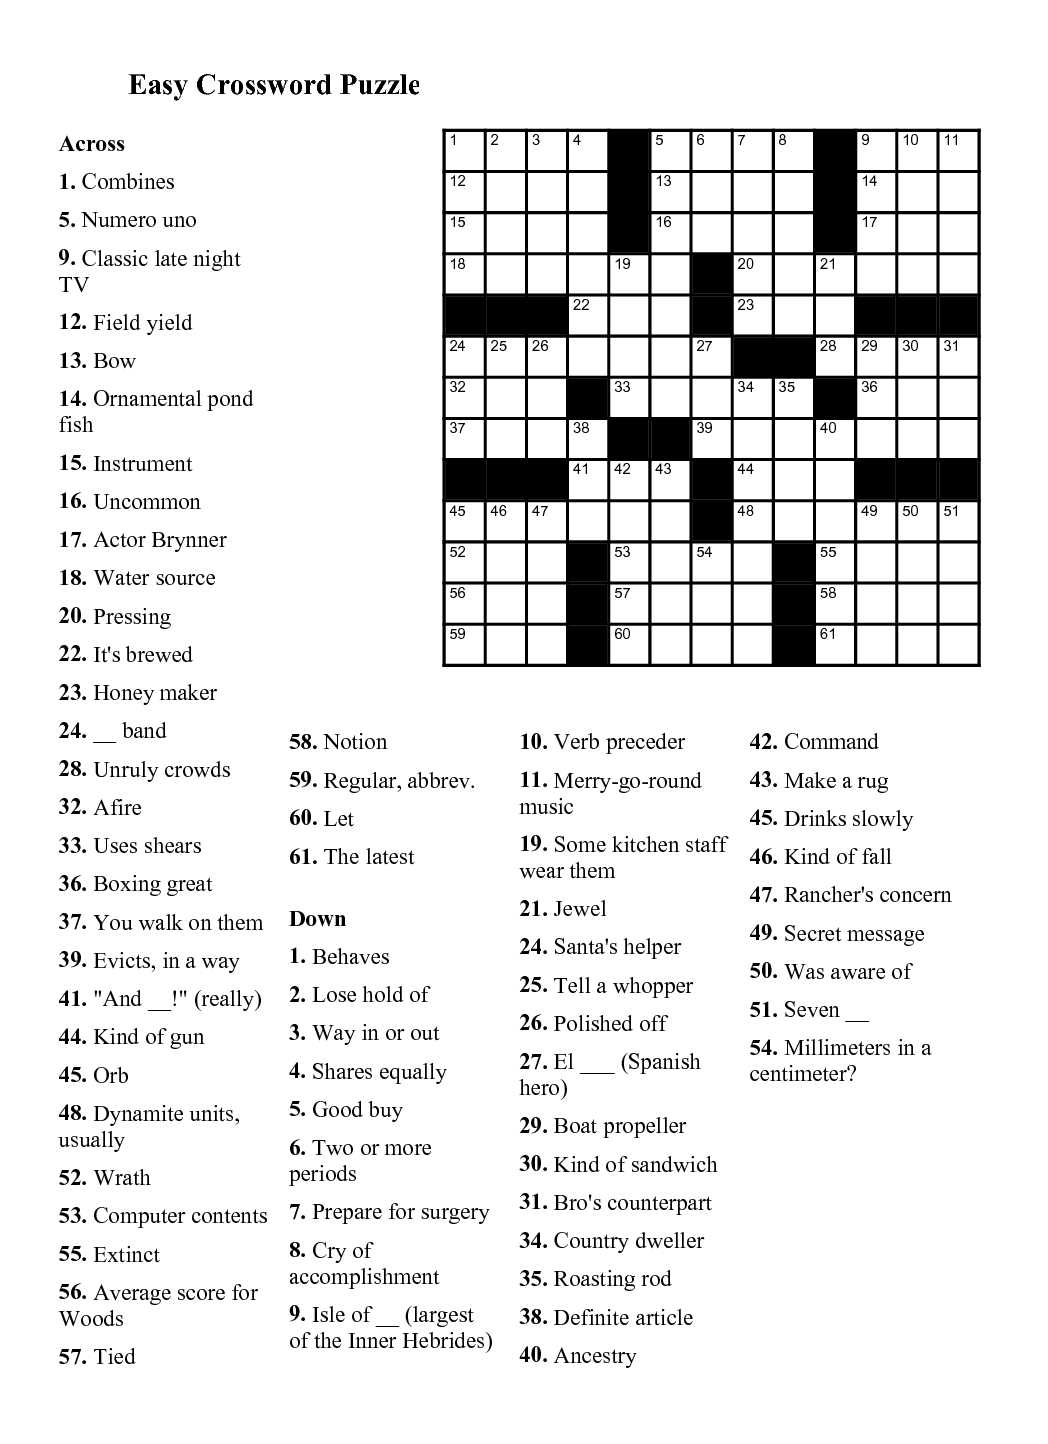 Easy Crossword Puzzles Printable Daily Template